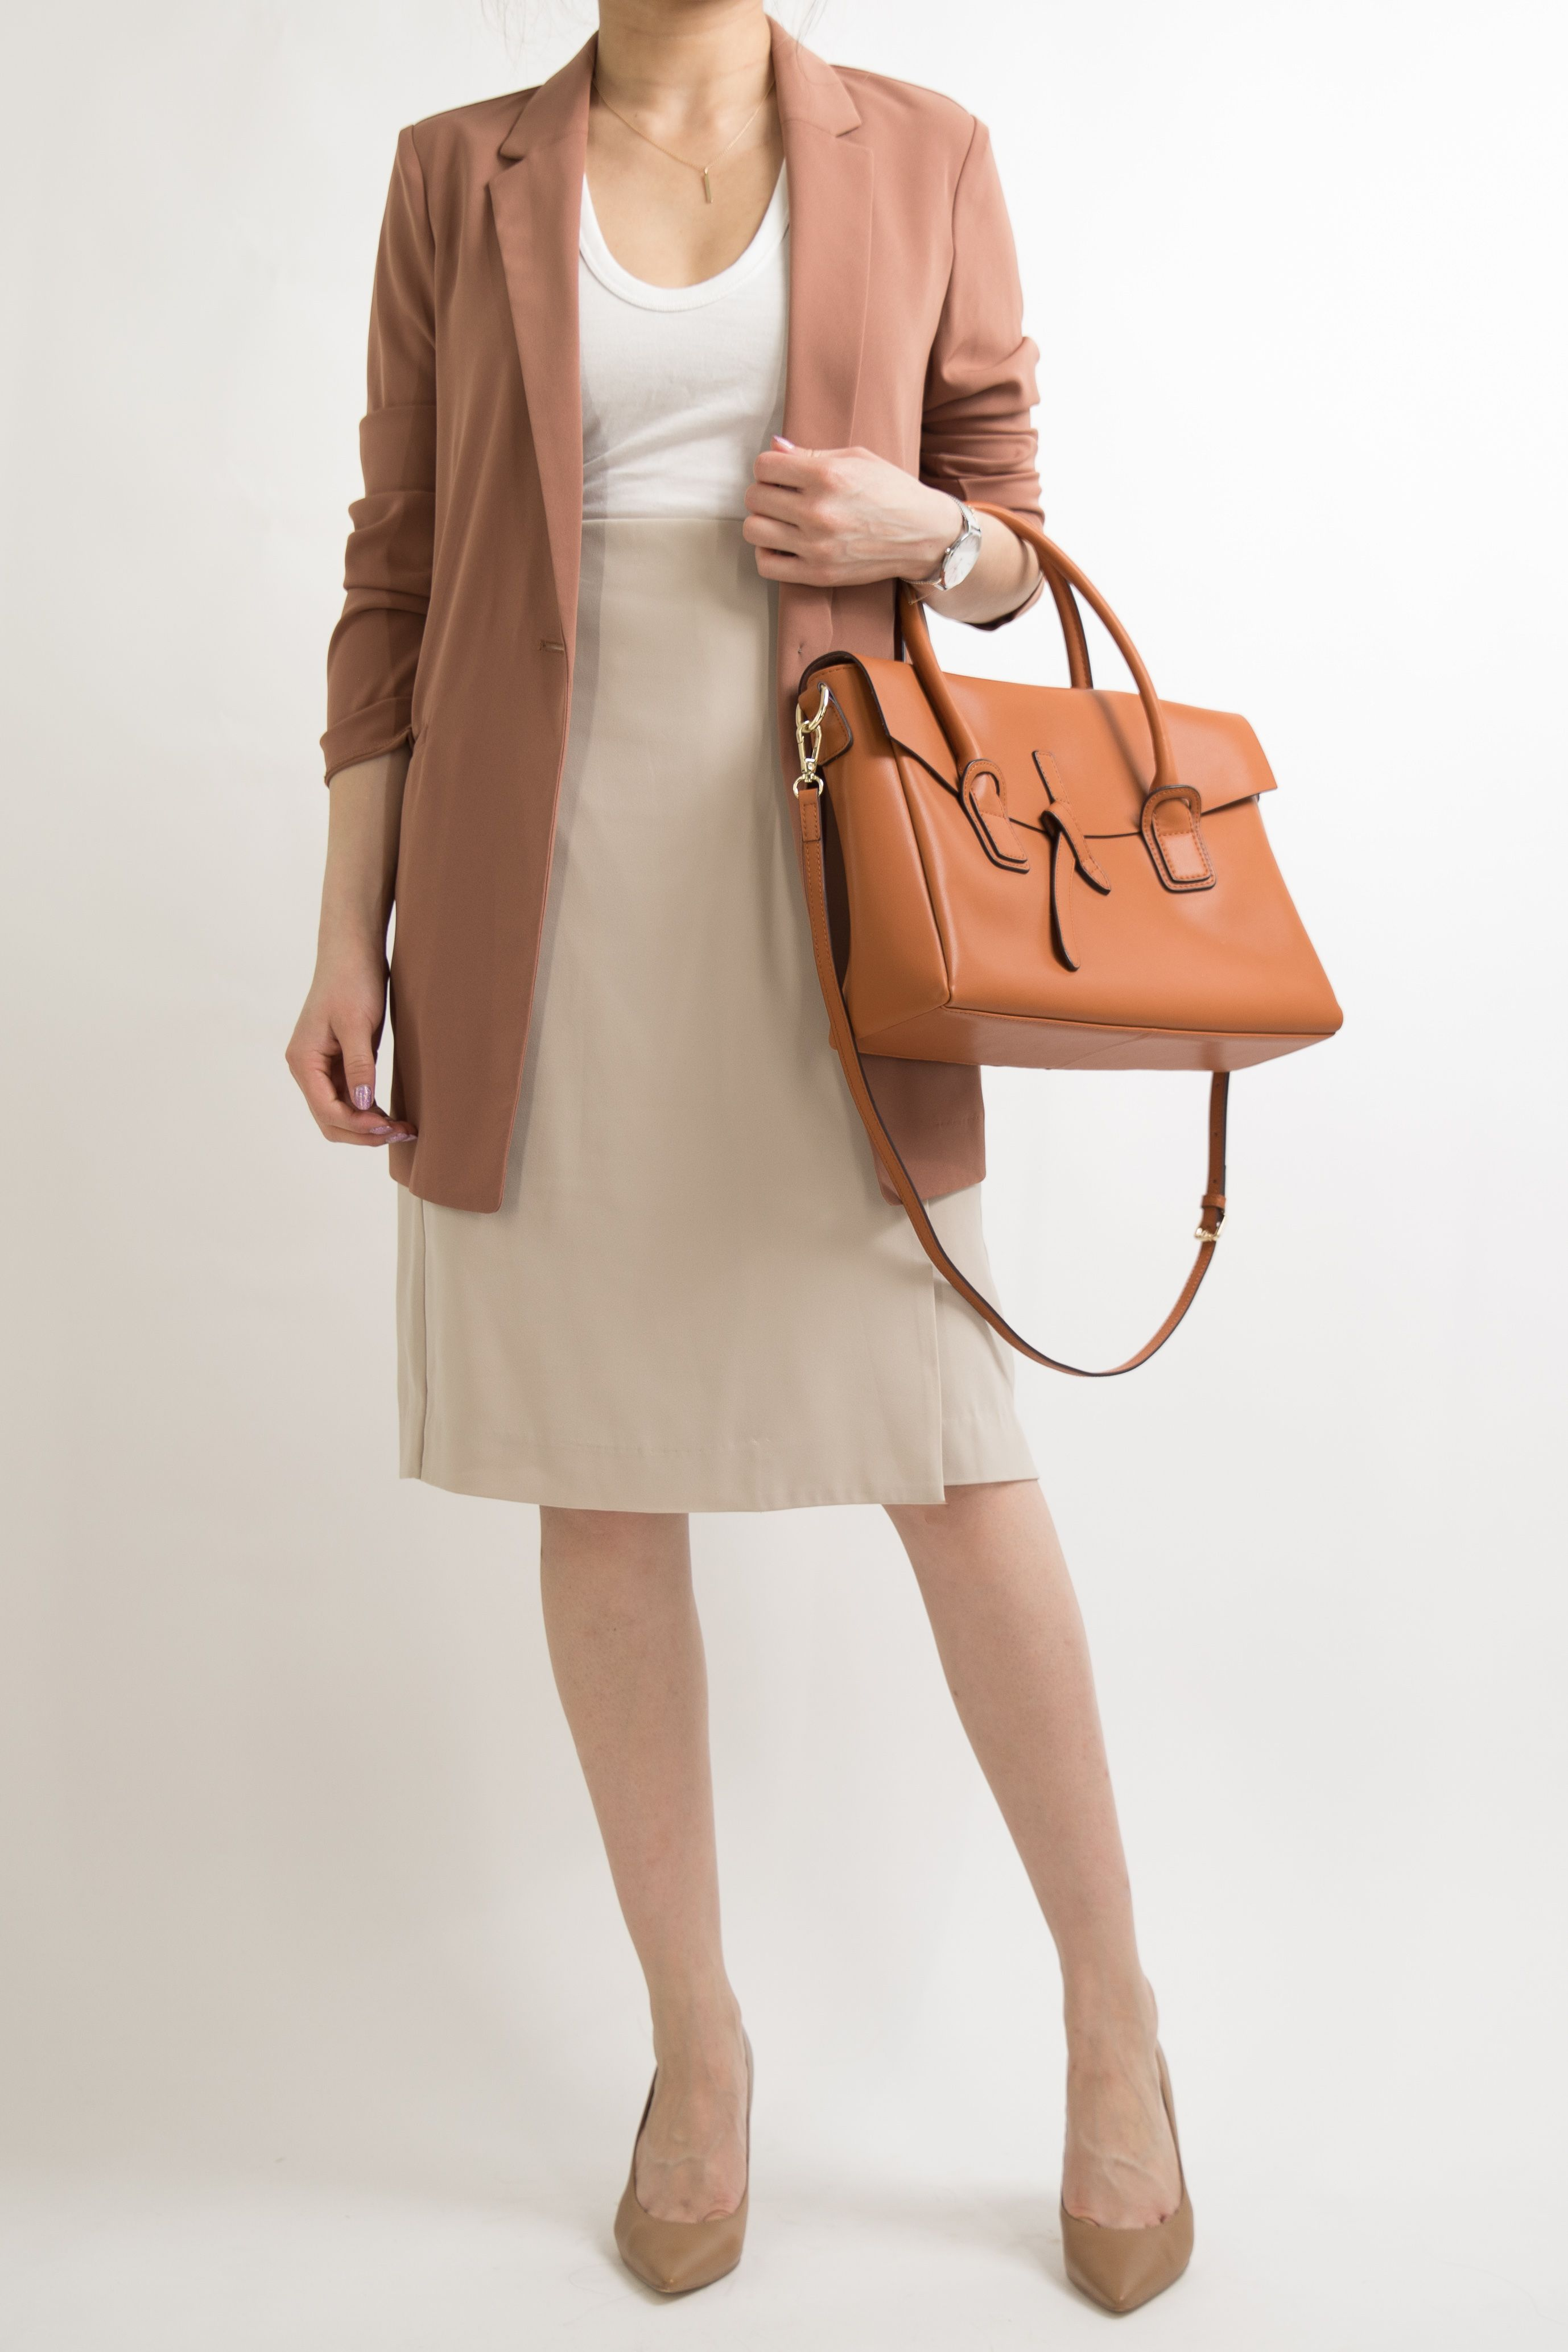 bd869266341 business-casual-women-work-office-professional-outfit-ideas-miss-louie-55